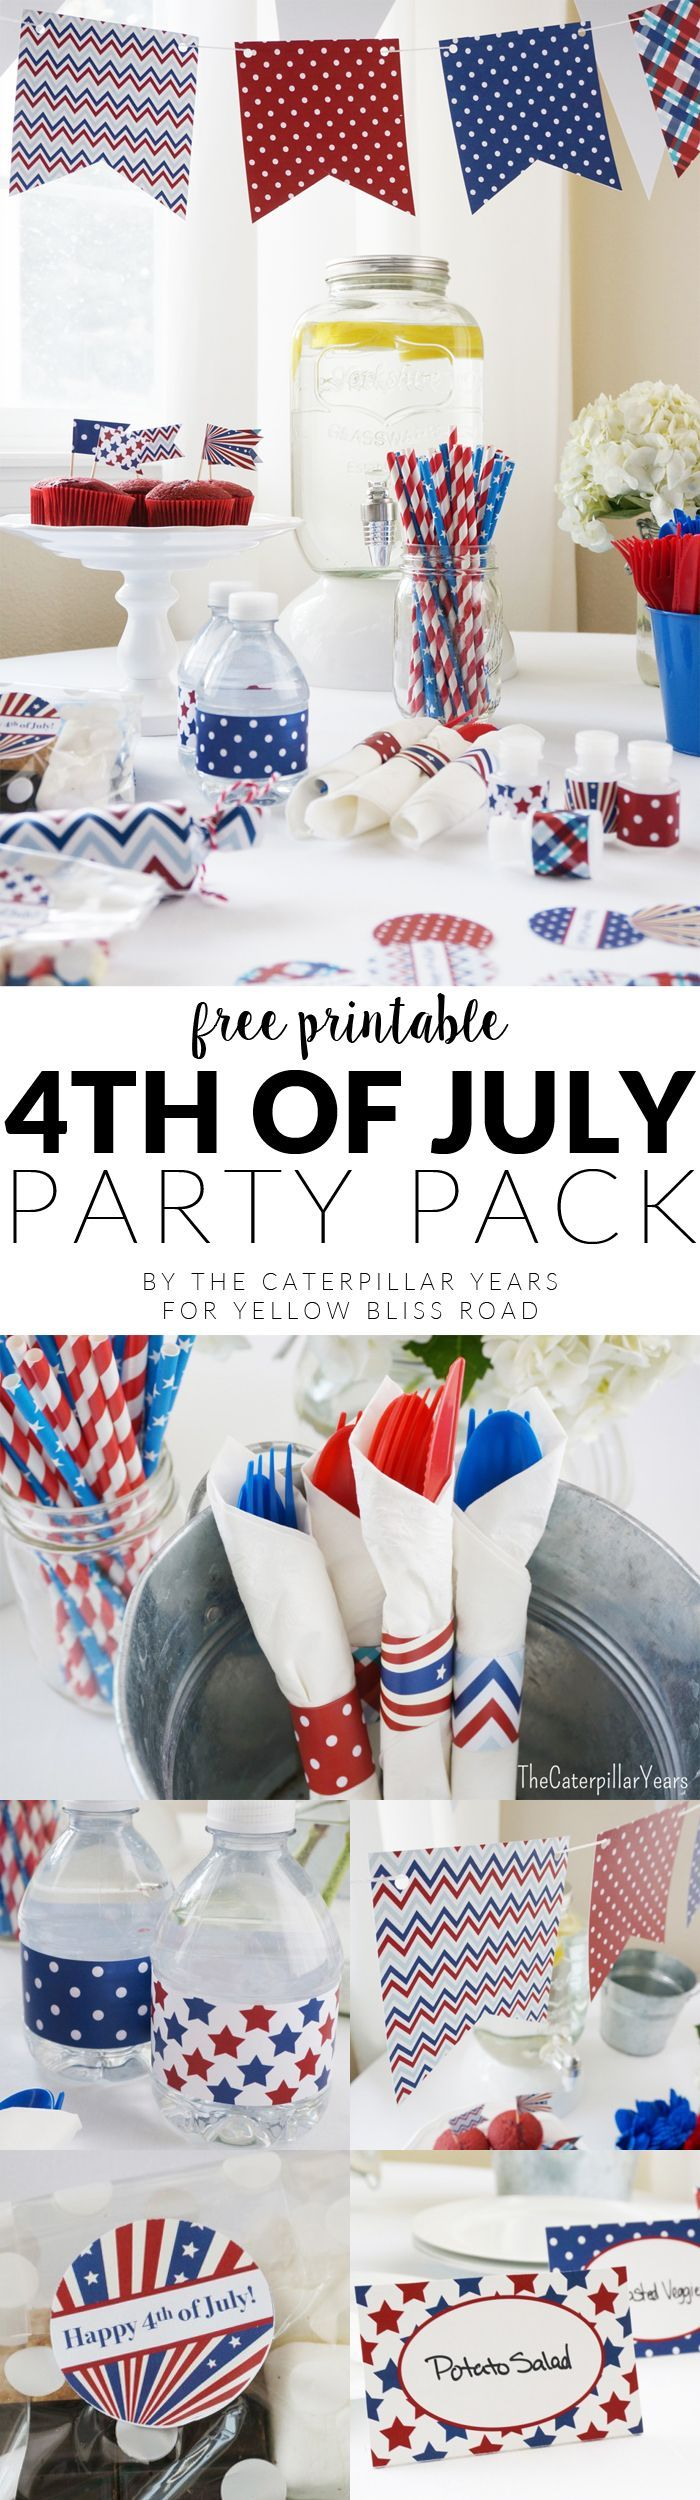 Patriotic Party Printables with cupcake toppers, printable banners and flags, water bottle labels and so much more!